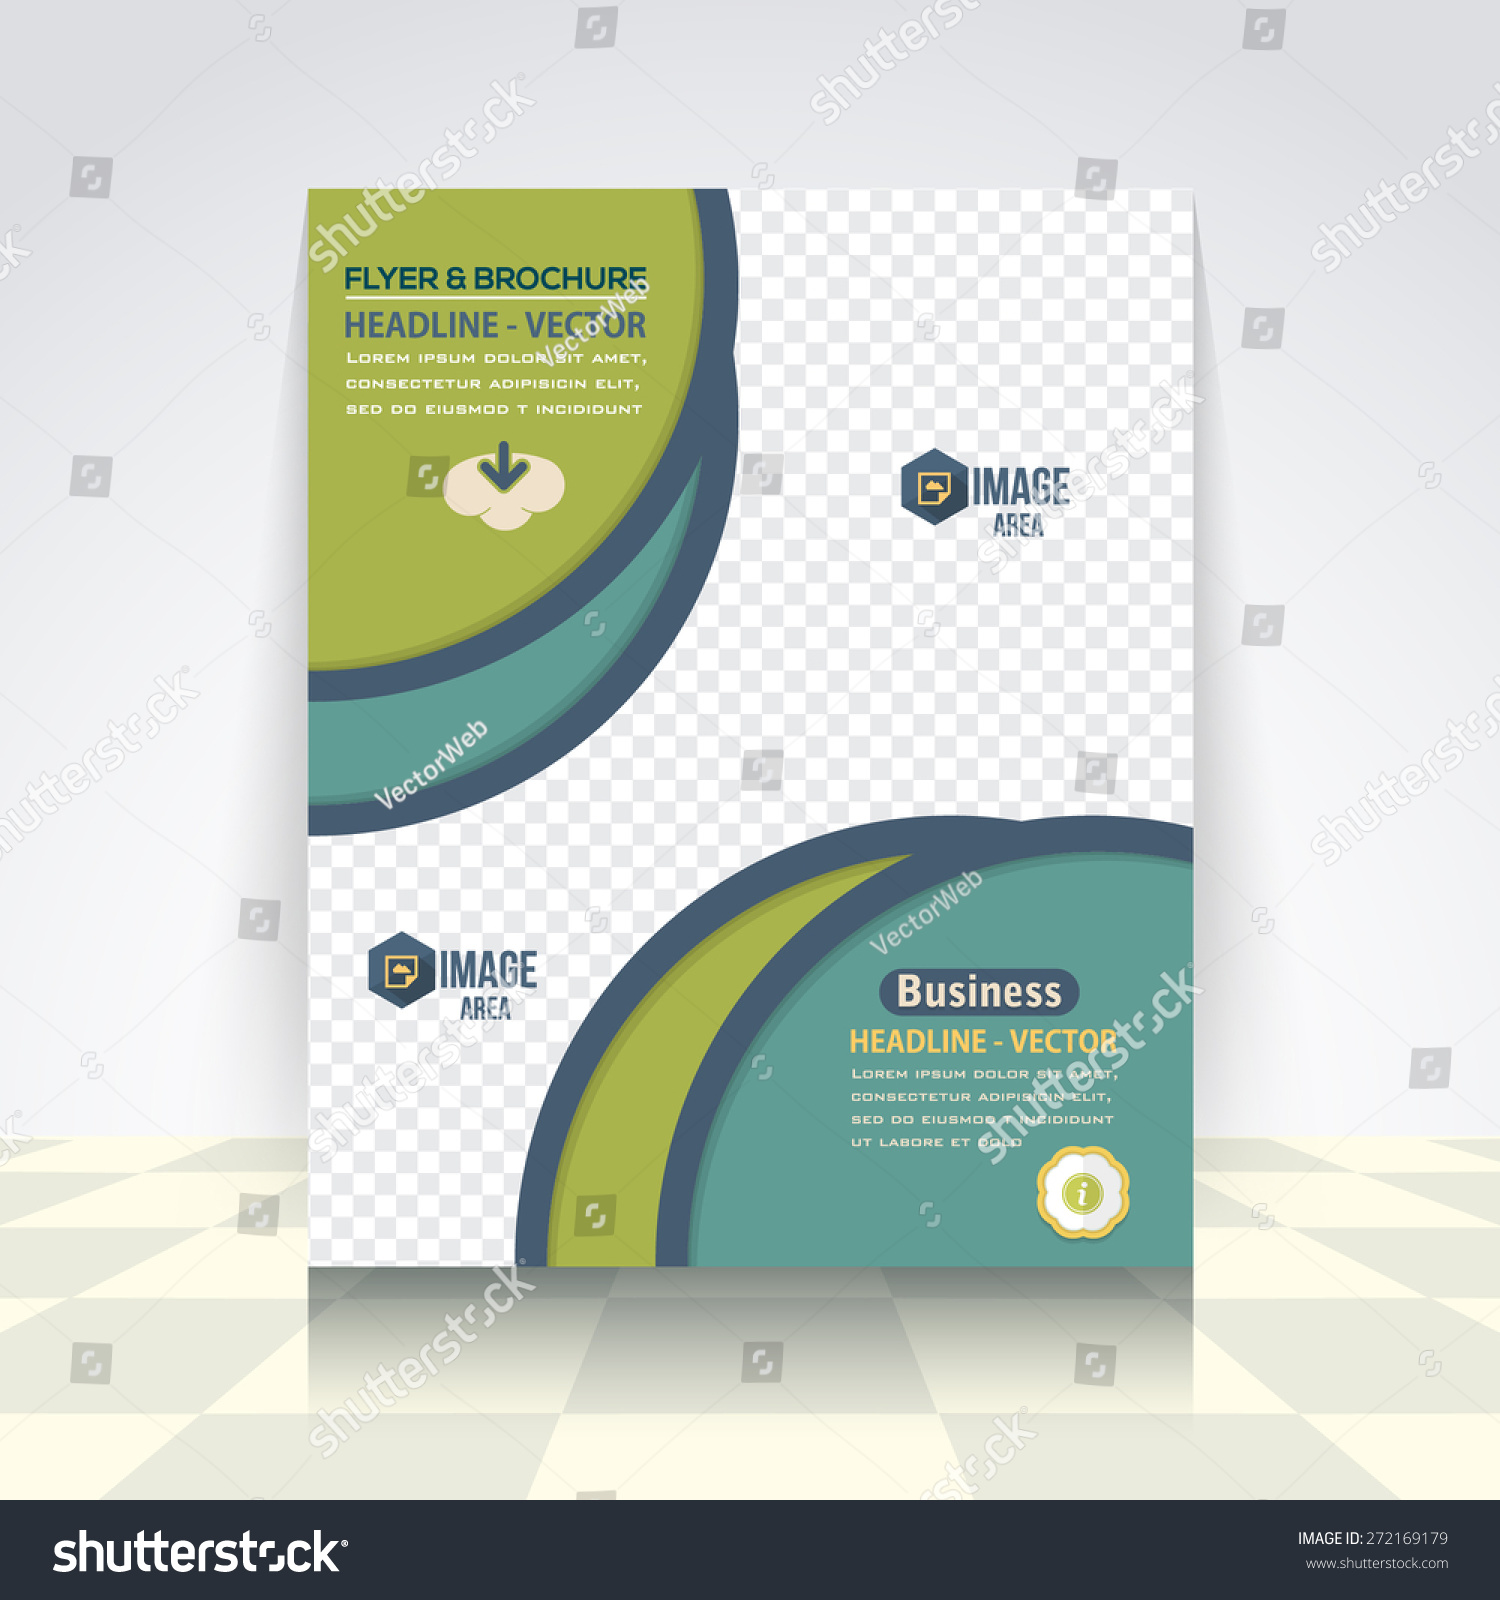 business concept clean style flyer brochure design corporate business concept clean style flyer brochure design corporate leaflet cover template